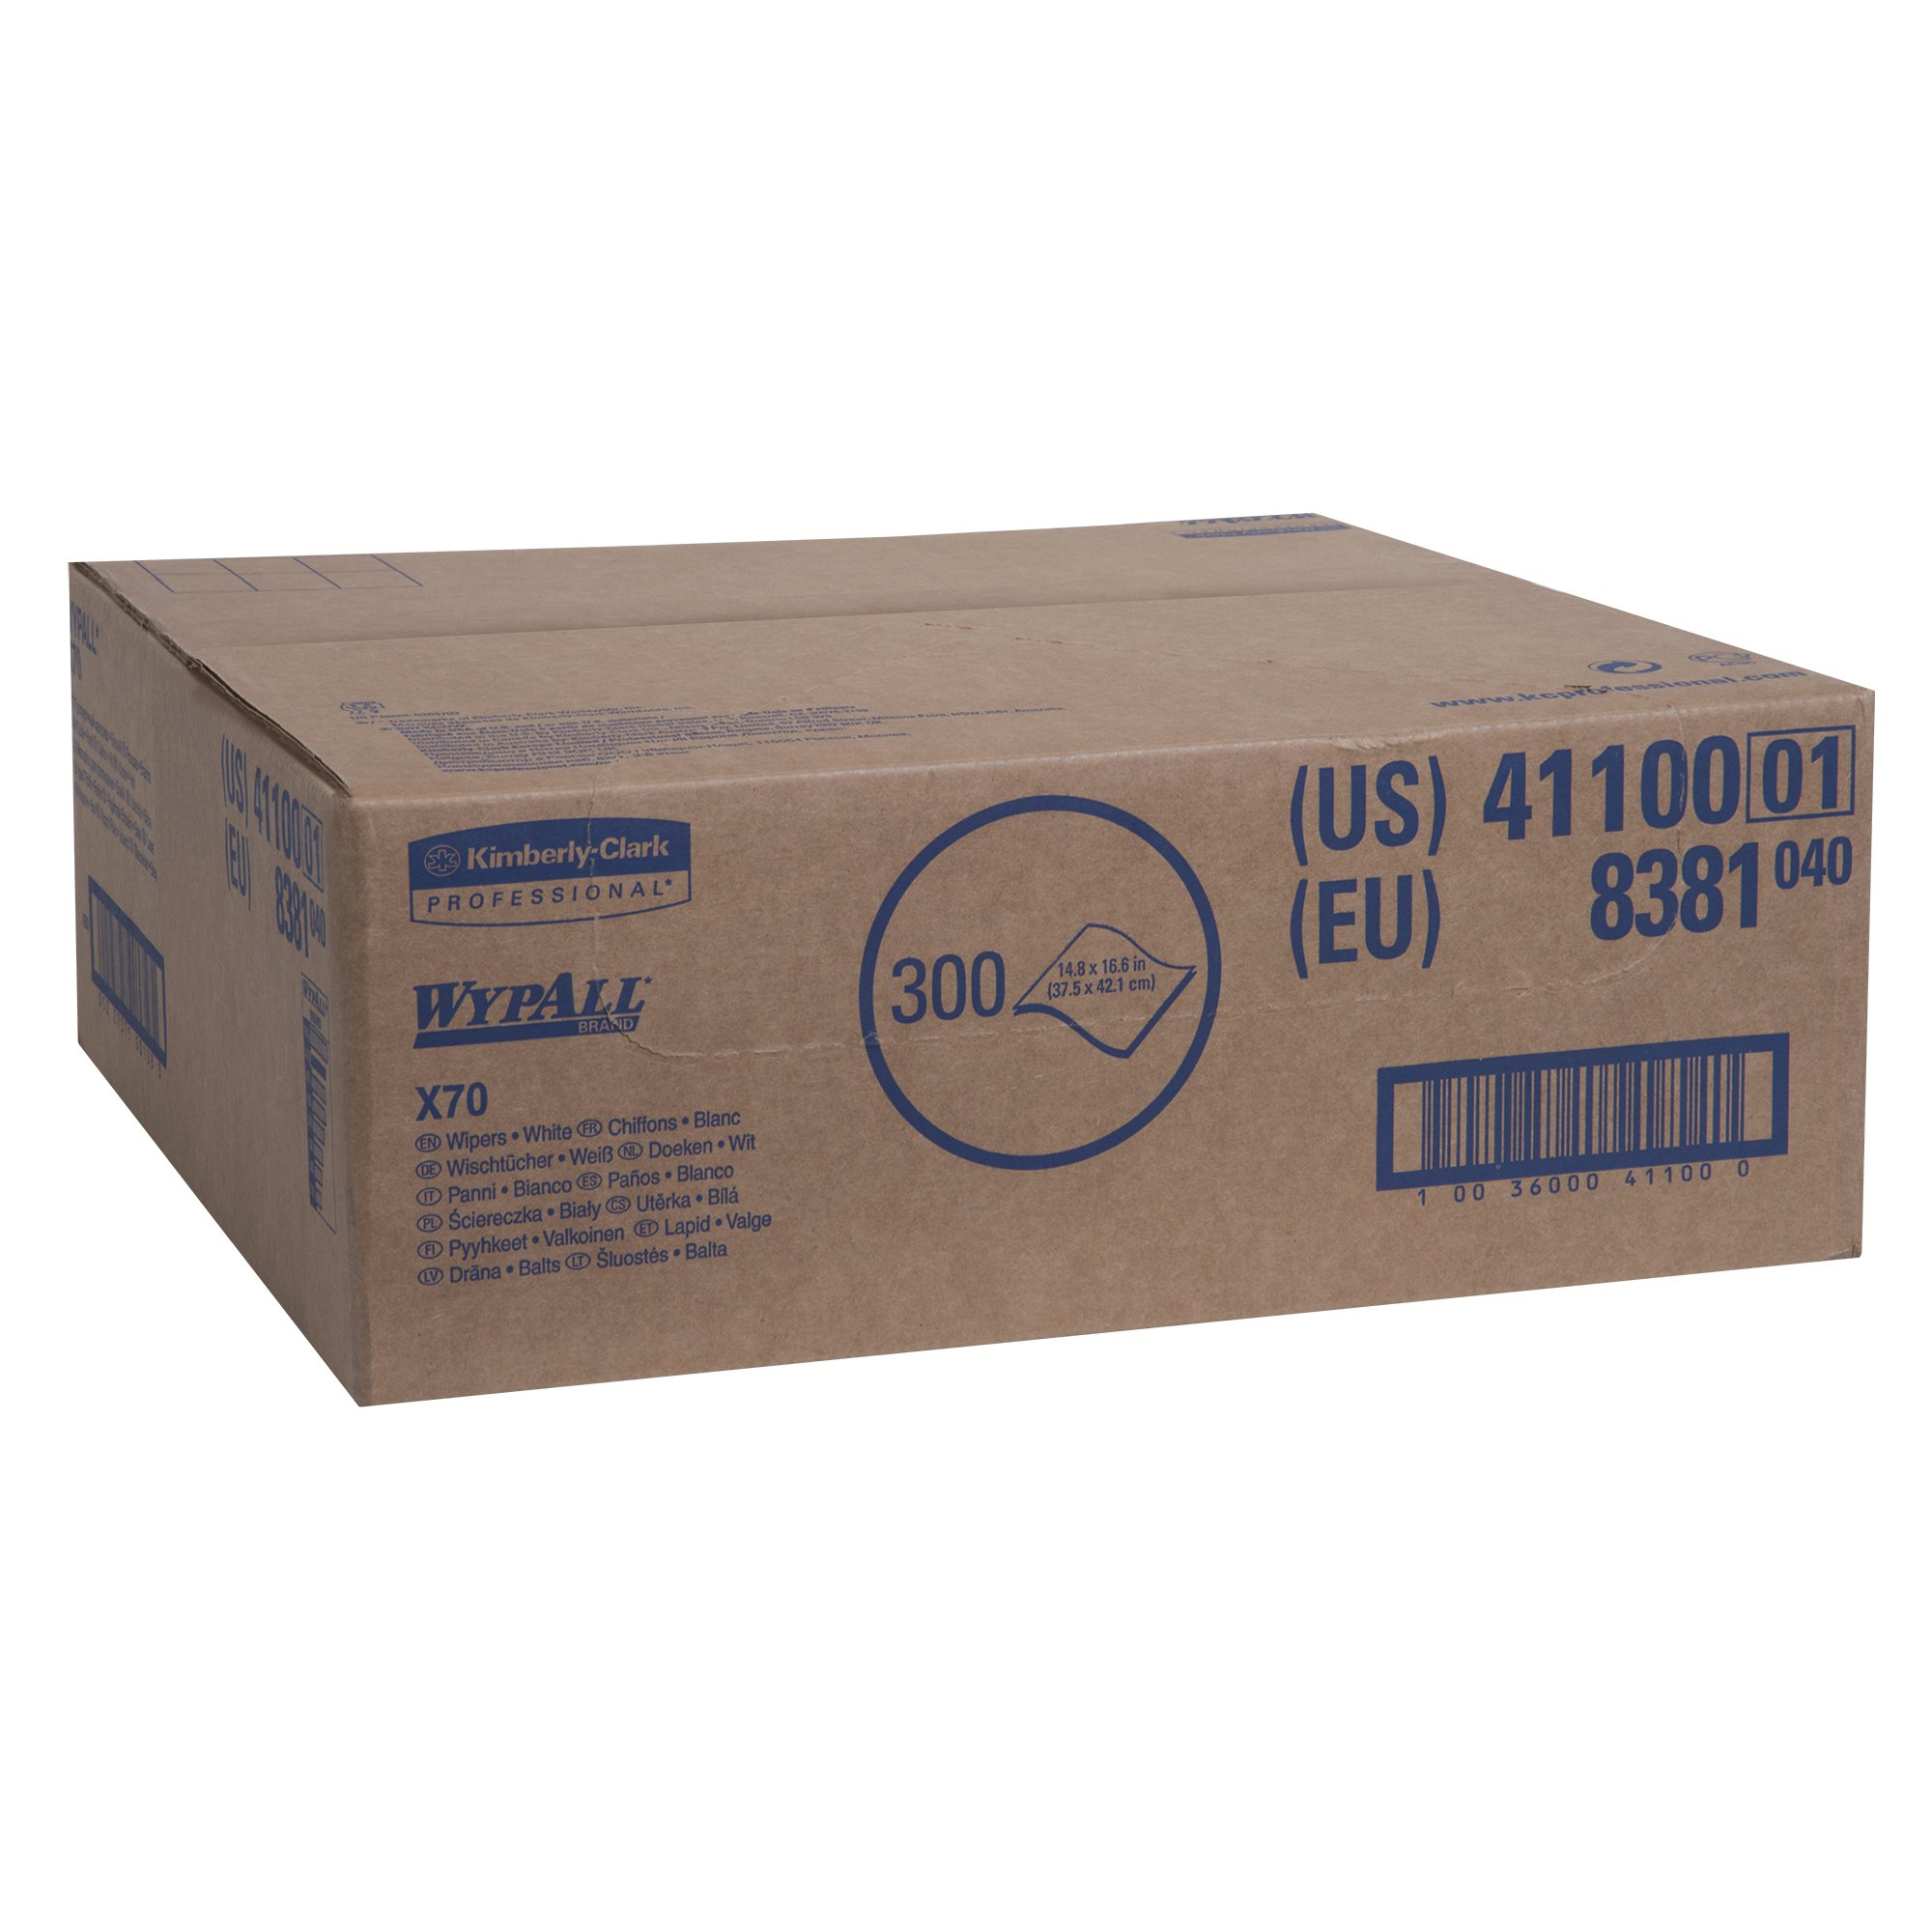 WypAll X70 Extended Use Reusable Cloths (41100), Flat Sheet Box, Long Lasting Performance, White, 1 Box, 300 Sheets